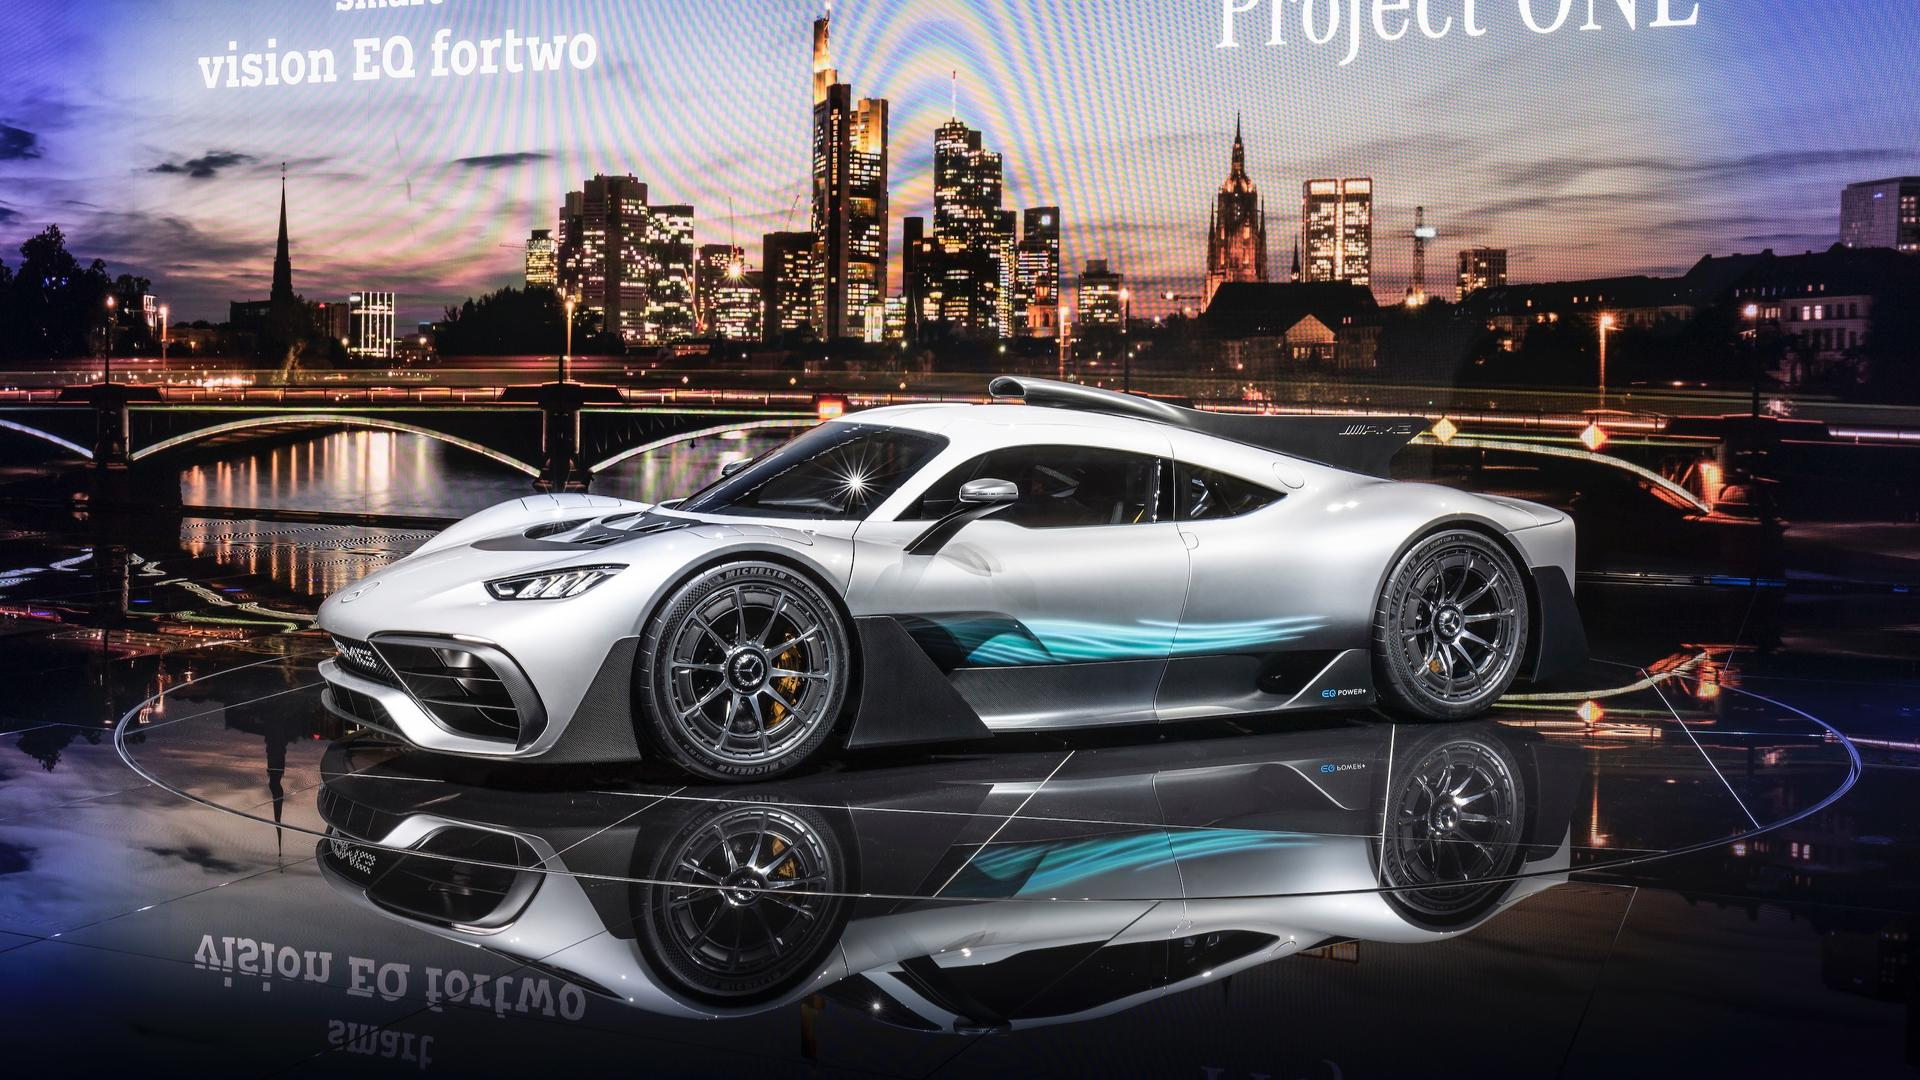 Cars For Sale Under 1000 >> Mercedes-AMG Project One Bursts Into Frankfurt With 1,000 HP